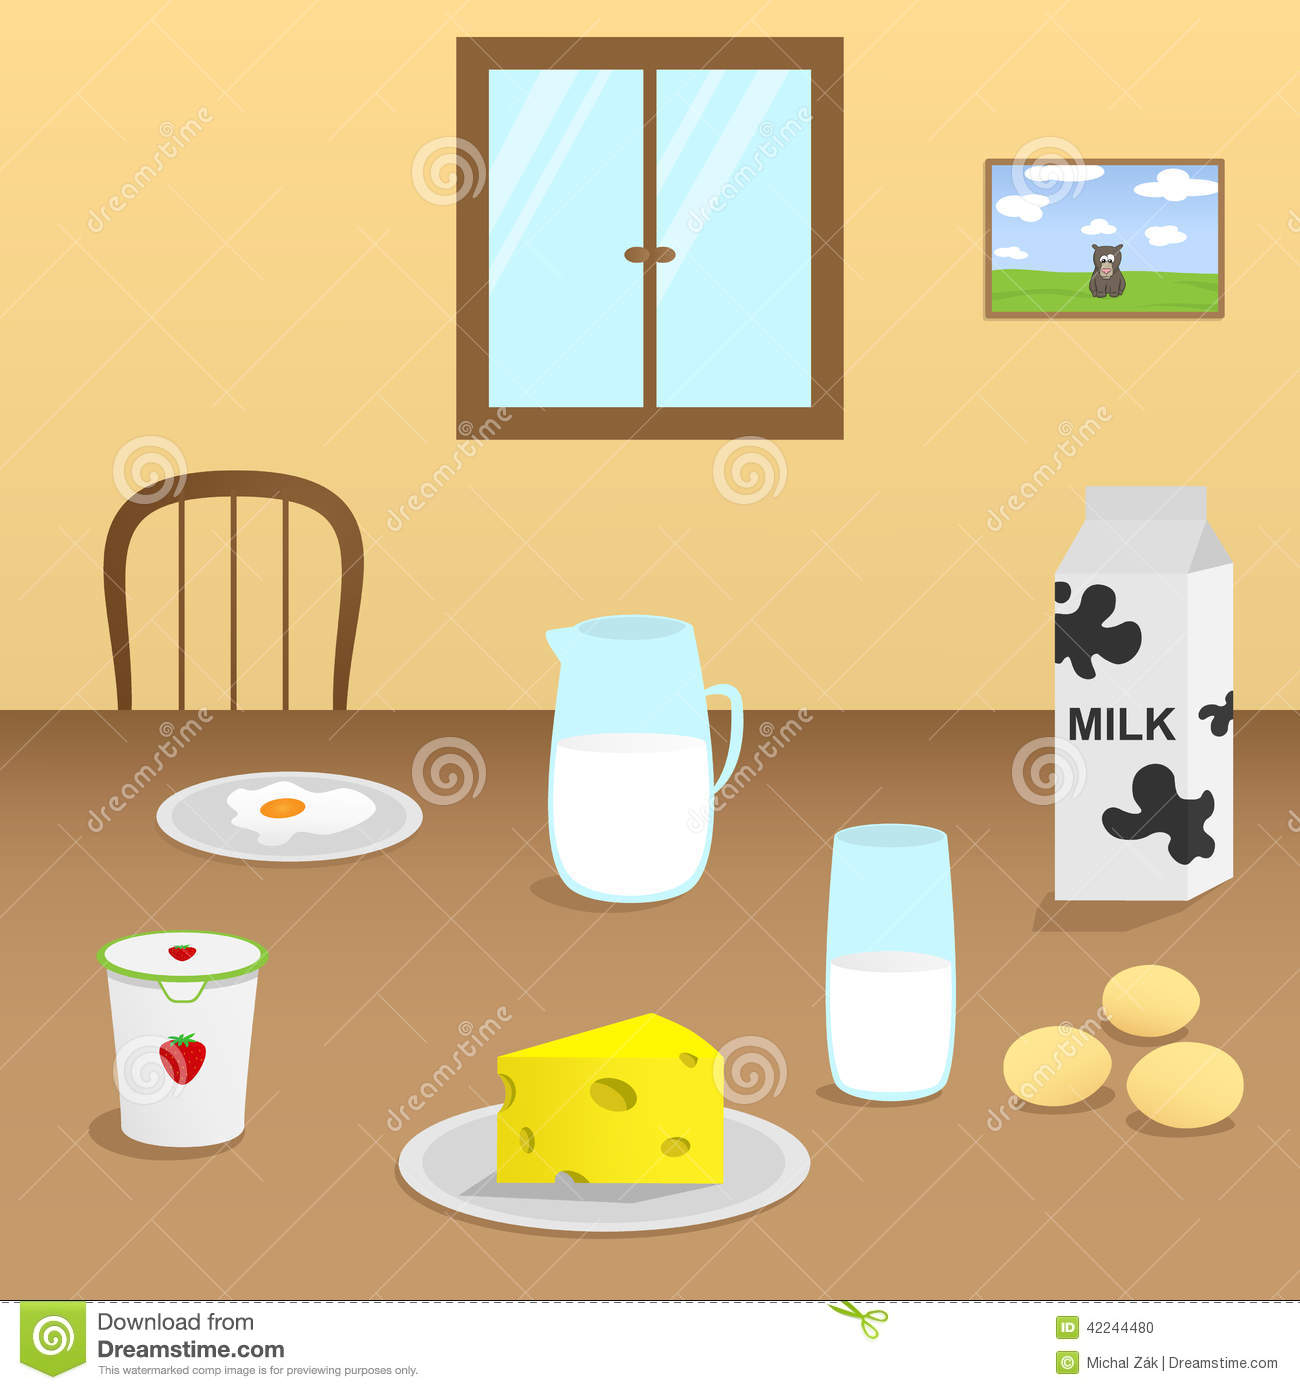 Cartoon kitchen table - Illustration Dairy Products Wooden Table Dining Room Jpg 1300x1390 Cartoon Kitchen Table Background